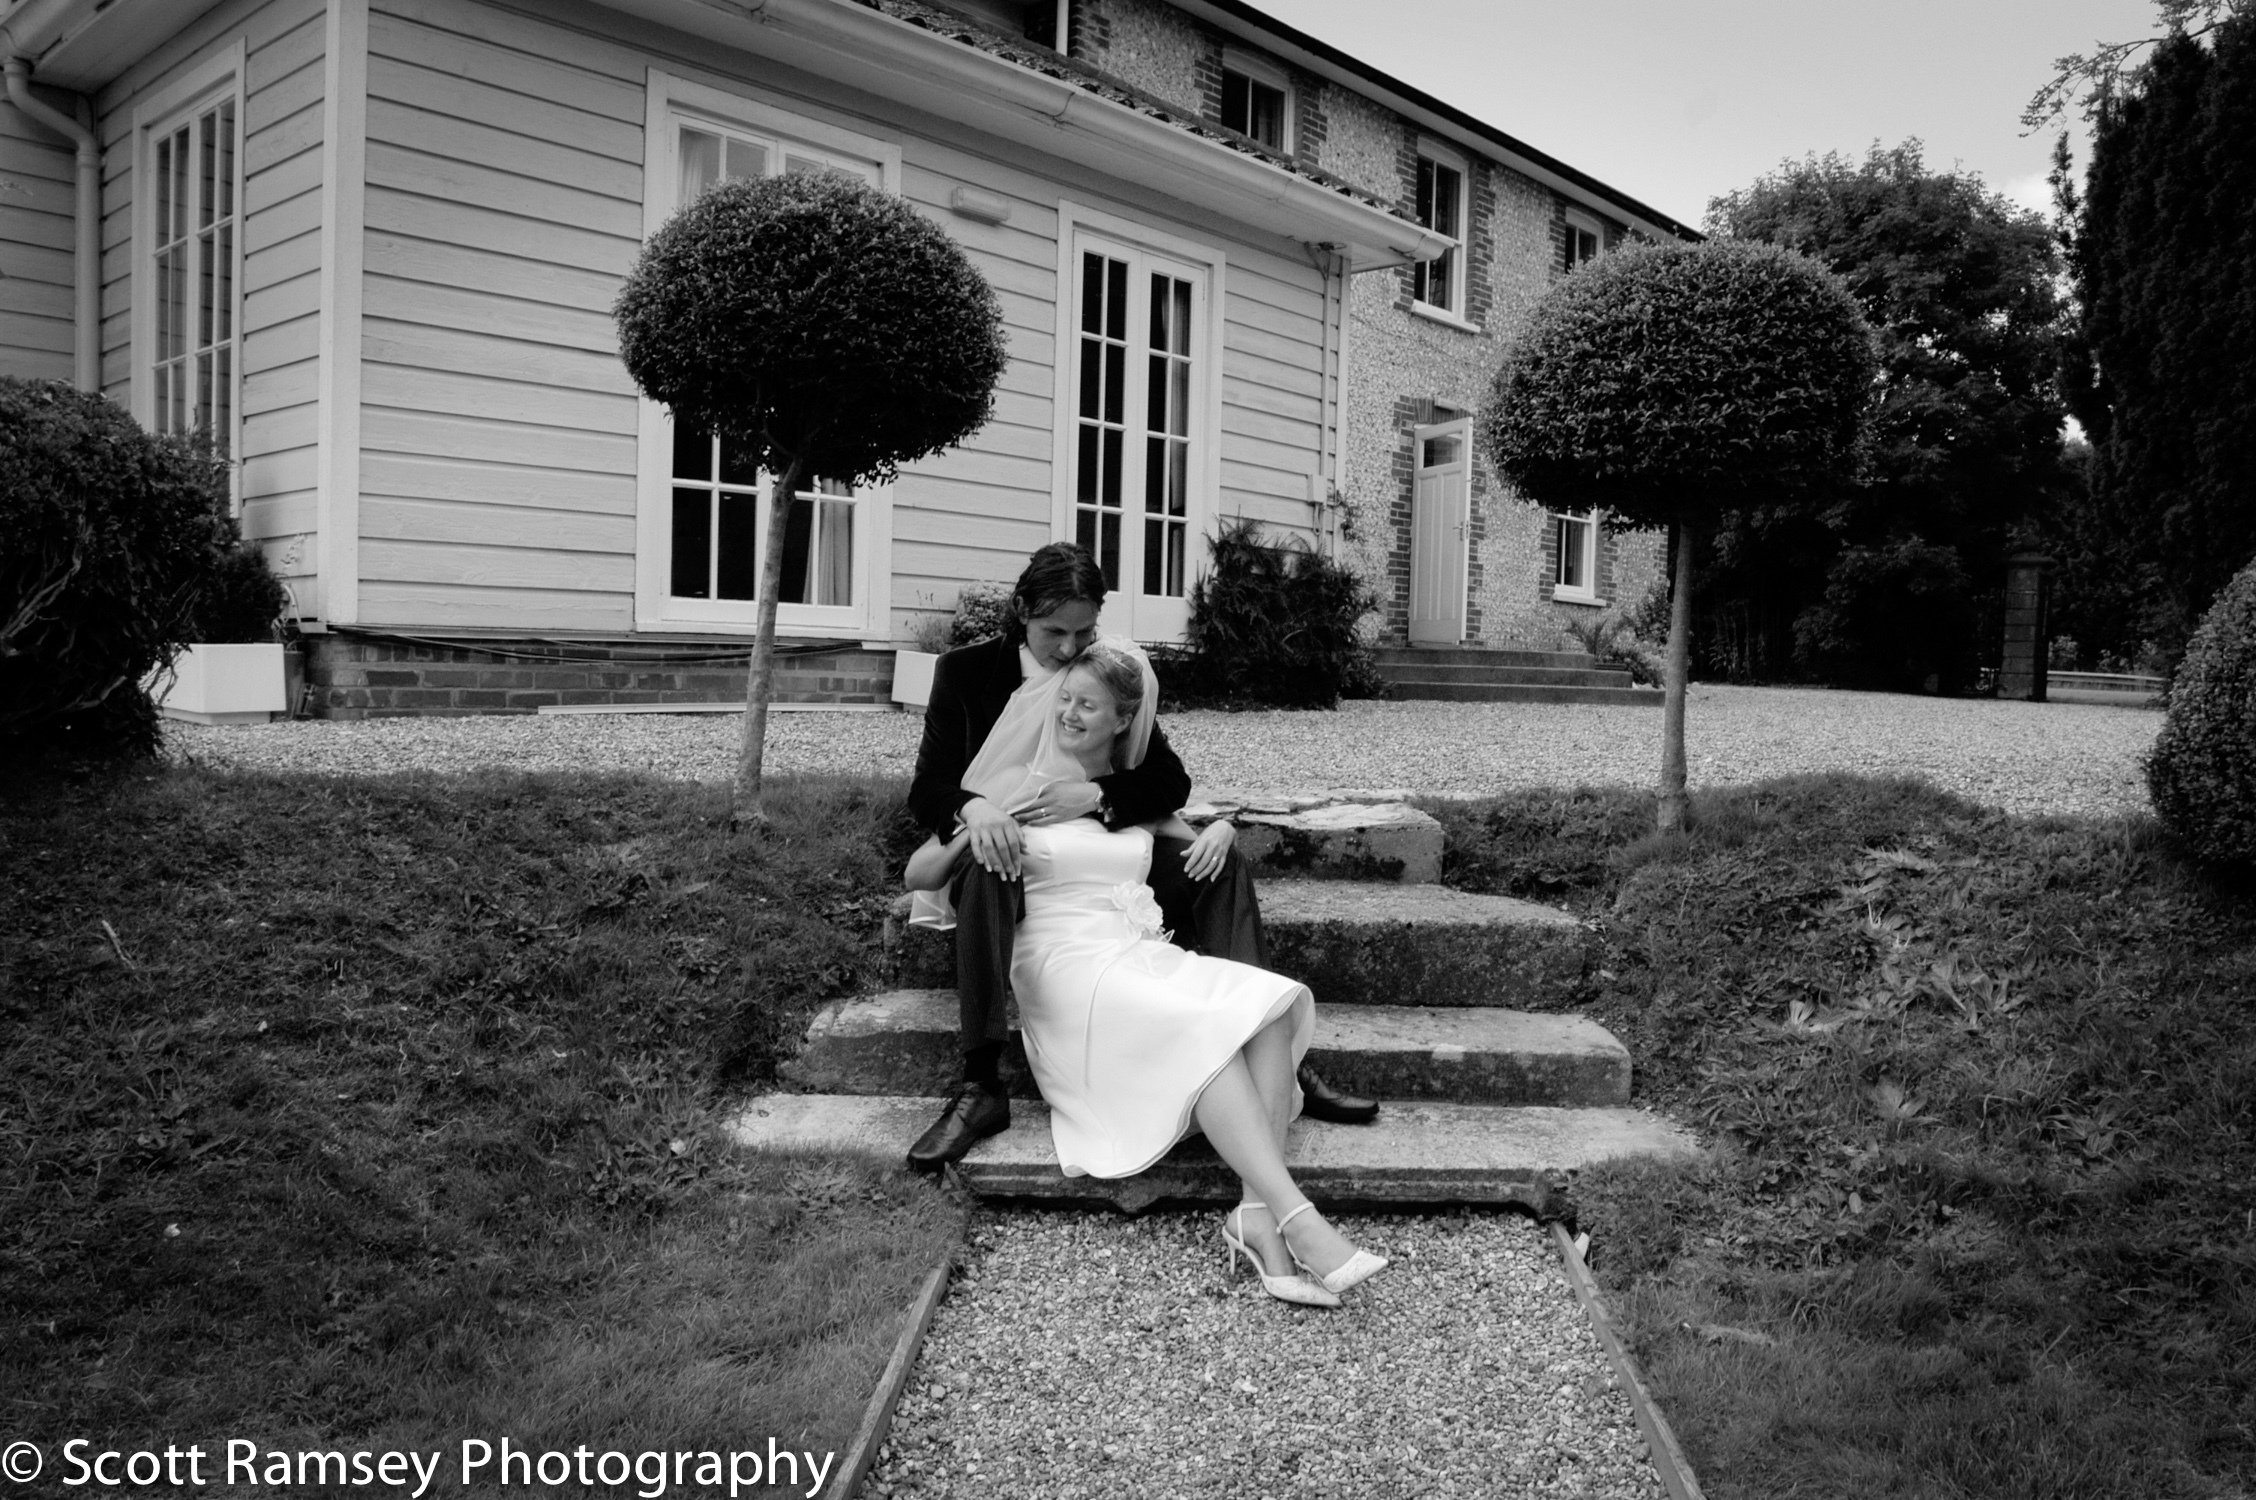 A Fontwell Park Wedding Photograph - A groom cuddleshis bride as they sit on steps in front of Fontwell House, Fontwell Park in West Sussex.